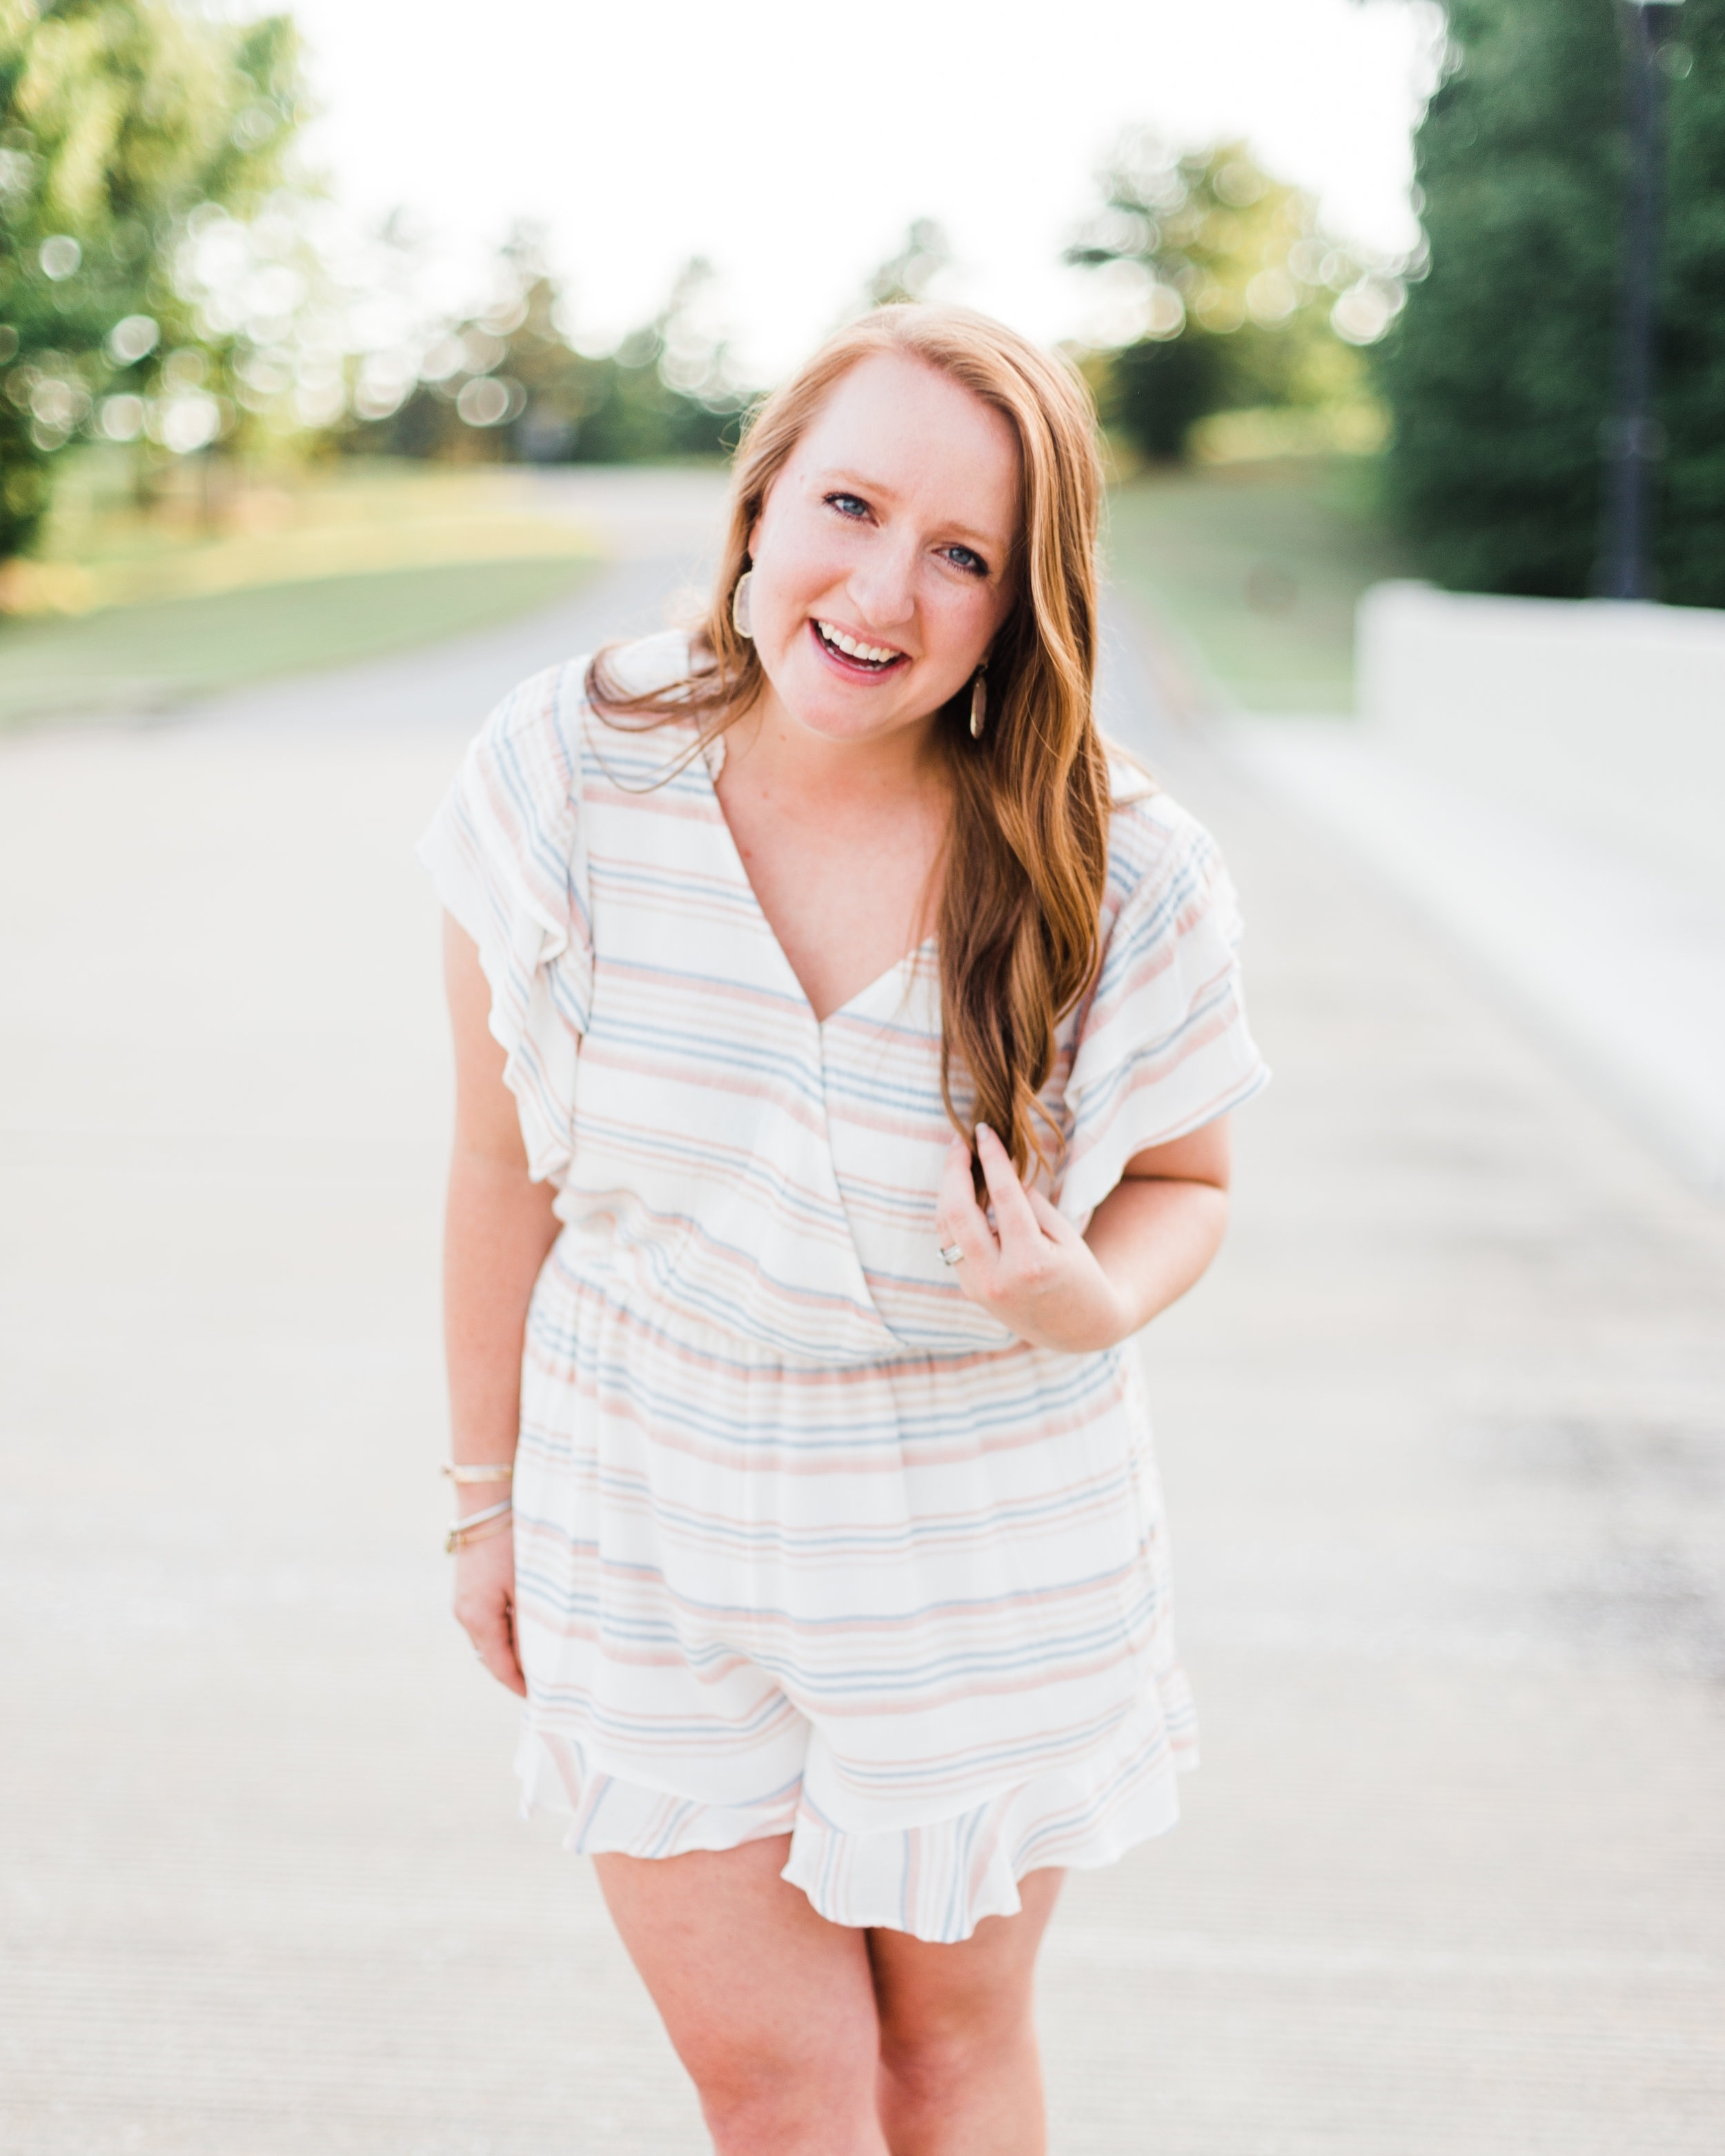 Behind the Lens - Hey there! I'm Nikki and I'm the fiery redhead behind the lens at Blue and Blue Photography. Click below to learn more about me and this business I love!